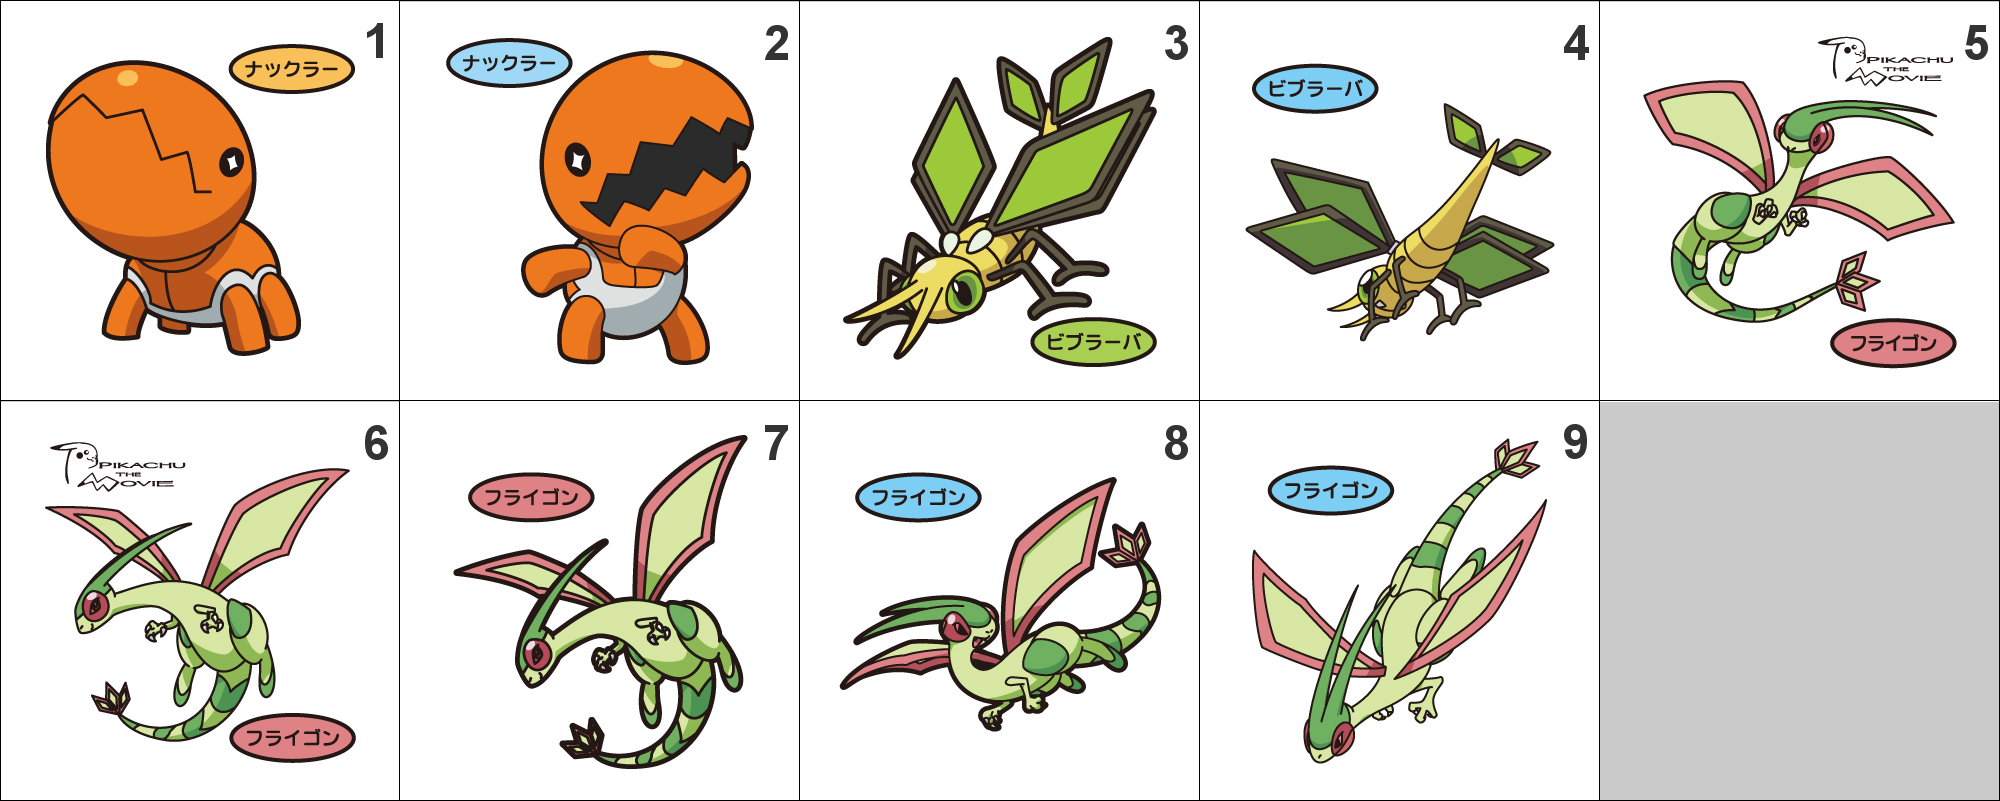 13599987 328 329 330 Trapinch Vibrava Flygon Pan Stickers Pokemon on Open Number Line